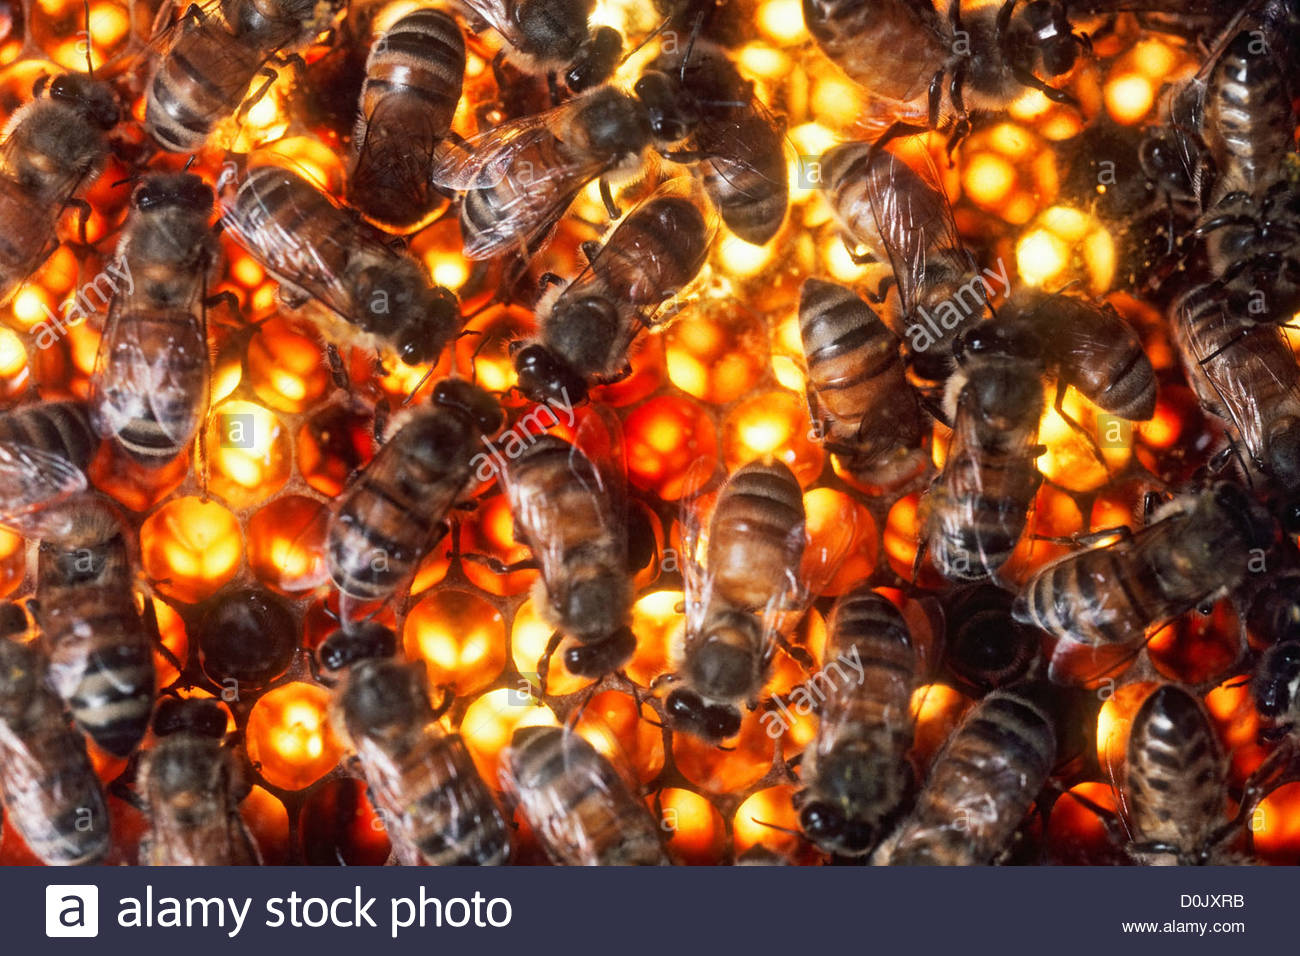 Africanized bees are considered to be more  aggressive than the average honeybee. - Stock Image